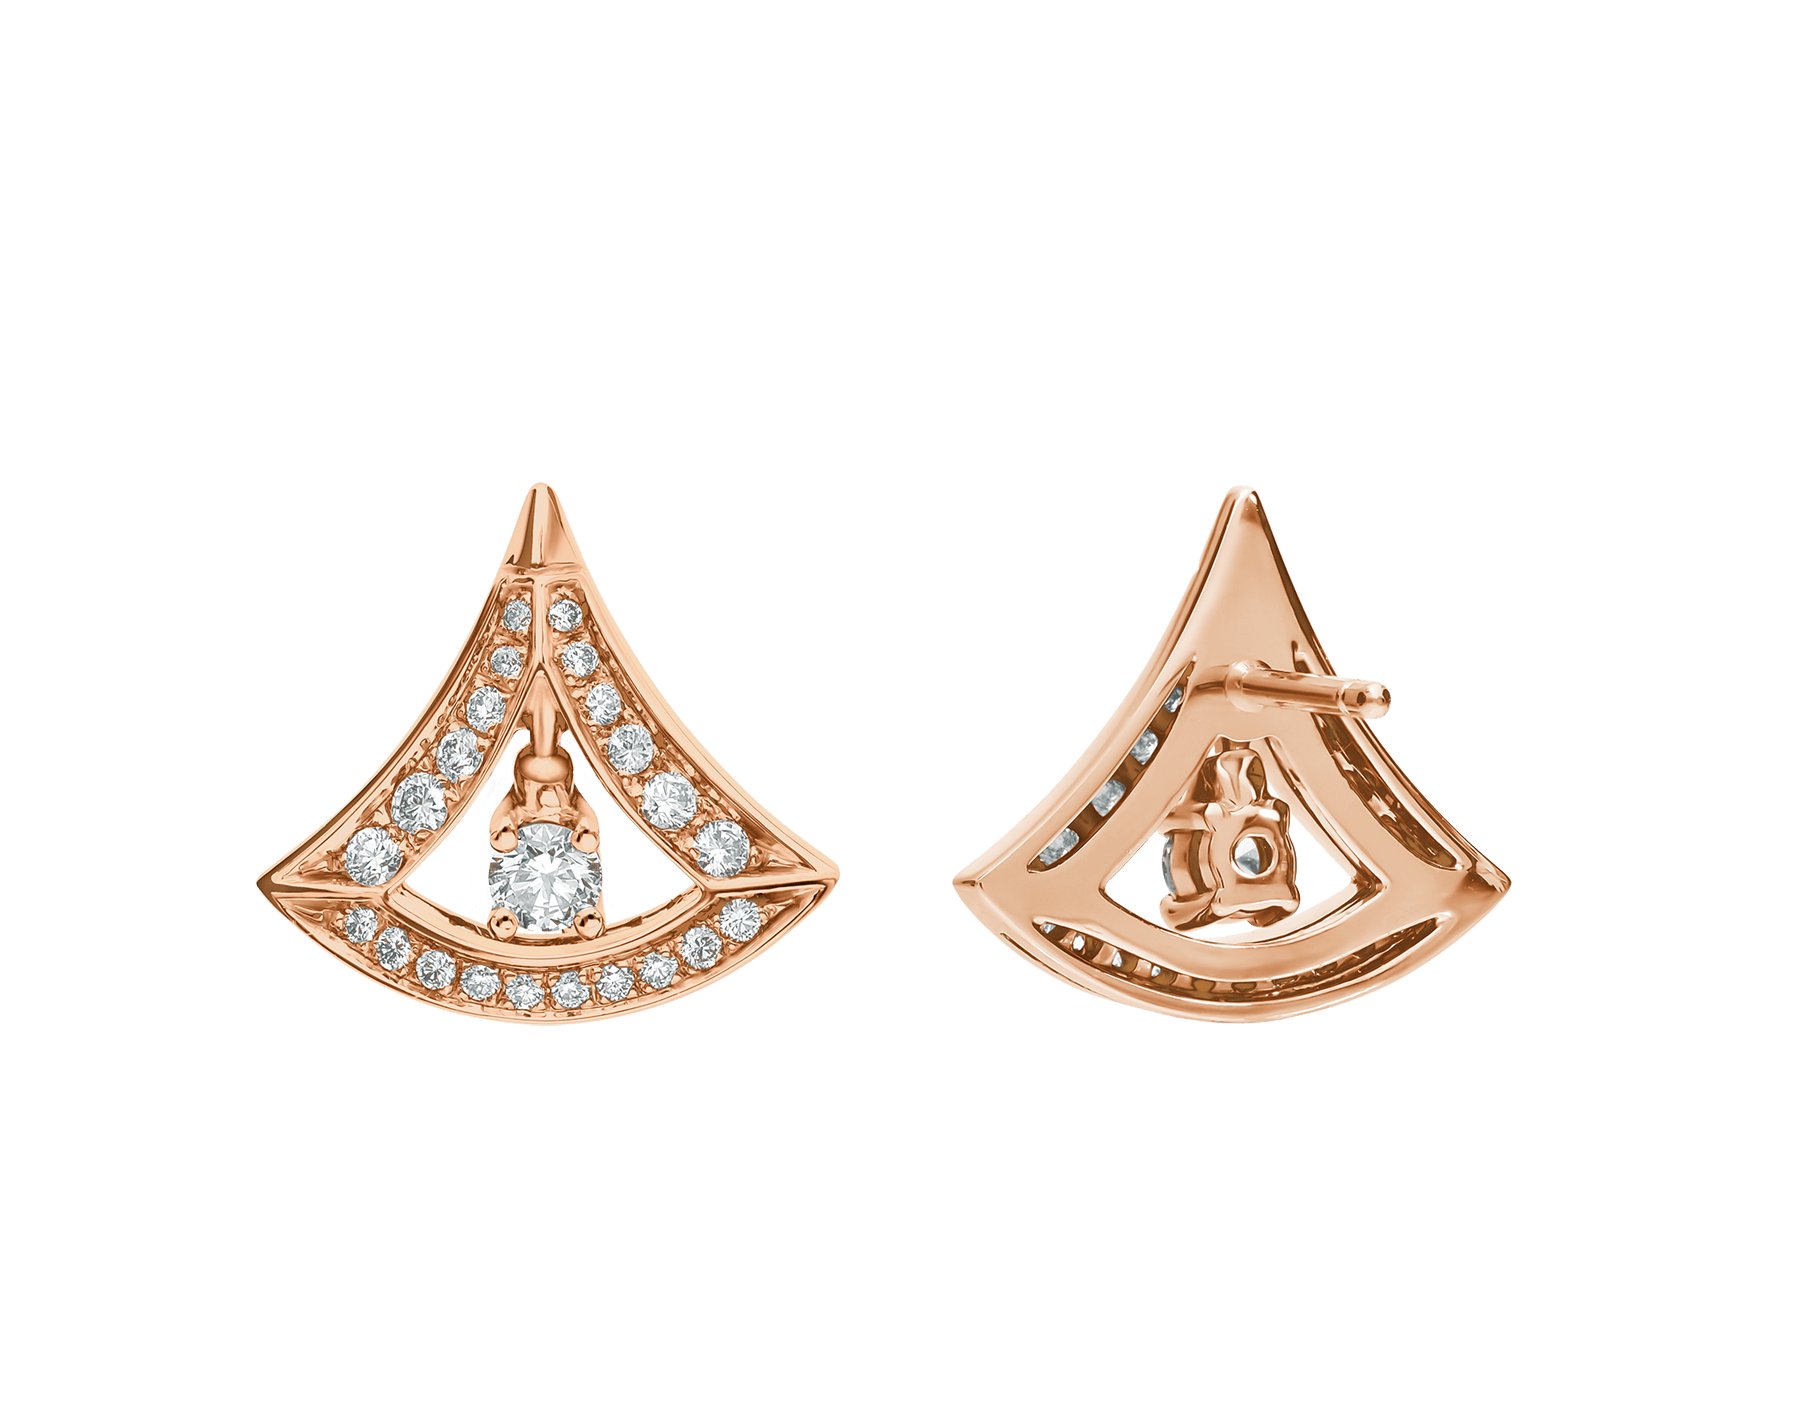 DIVAS' DREAM 18 kt rose gold earrings, set with round brilliant-cut diamonds and pavé diamonds. 356450 image 3